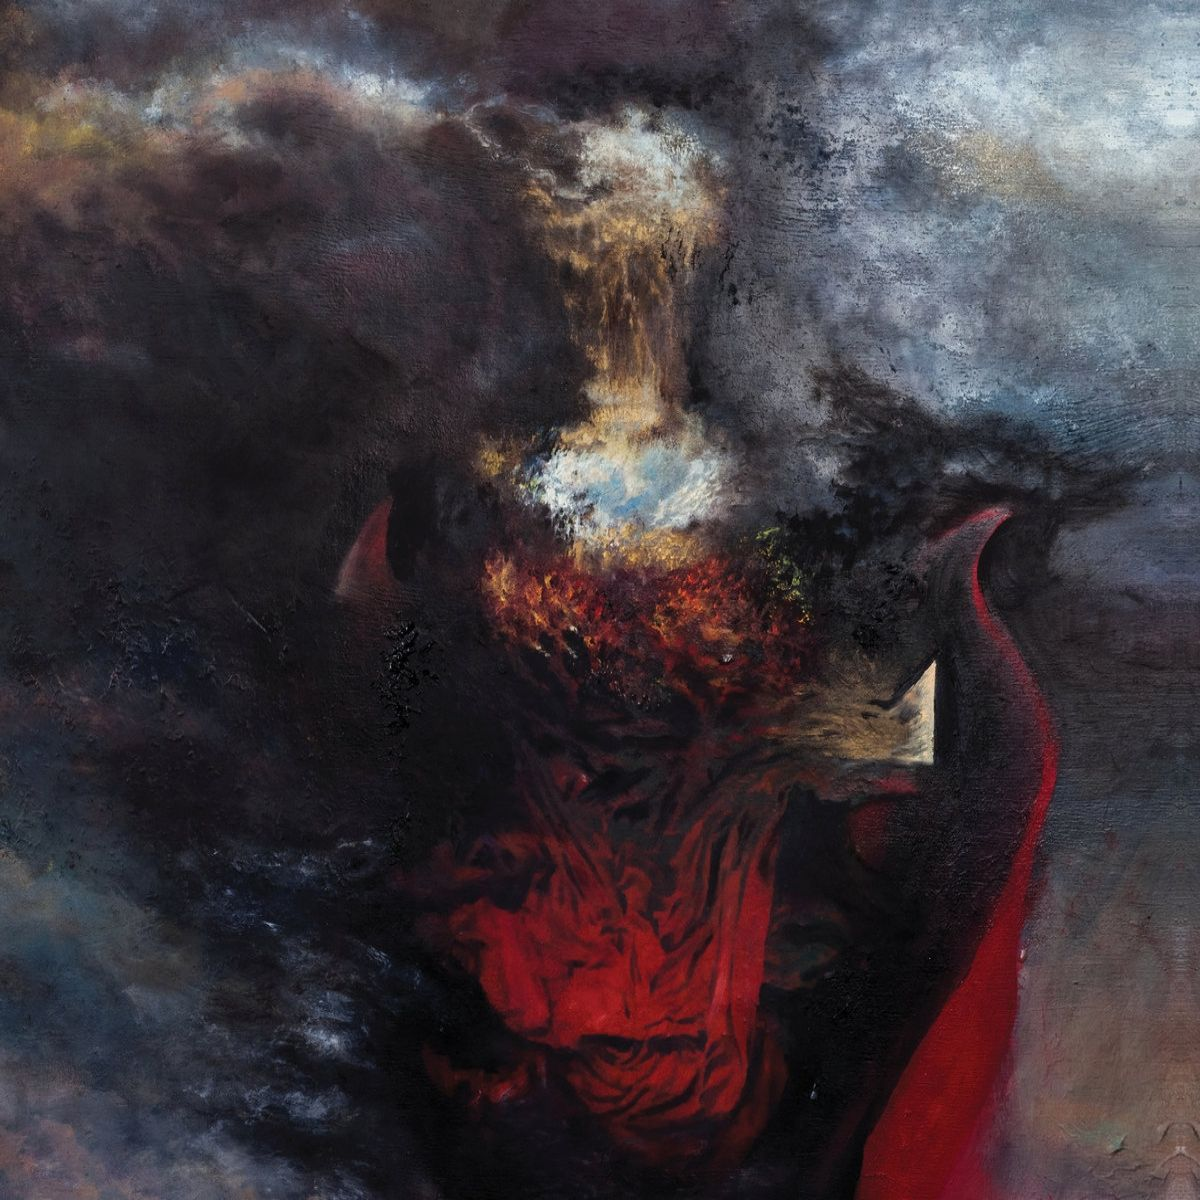 Review for Depths Above - Ex Nihilo